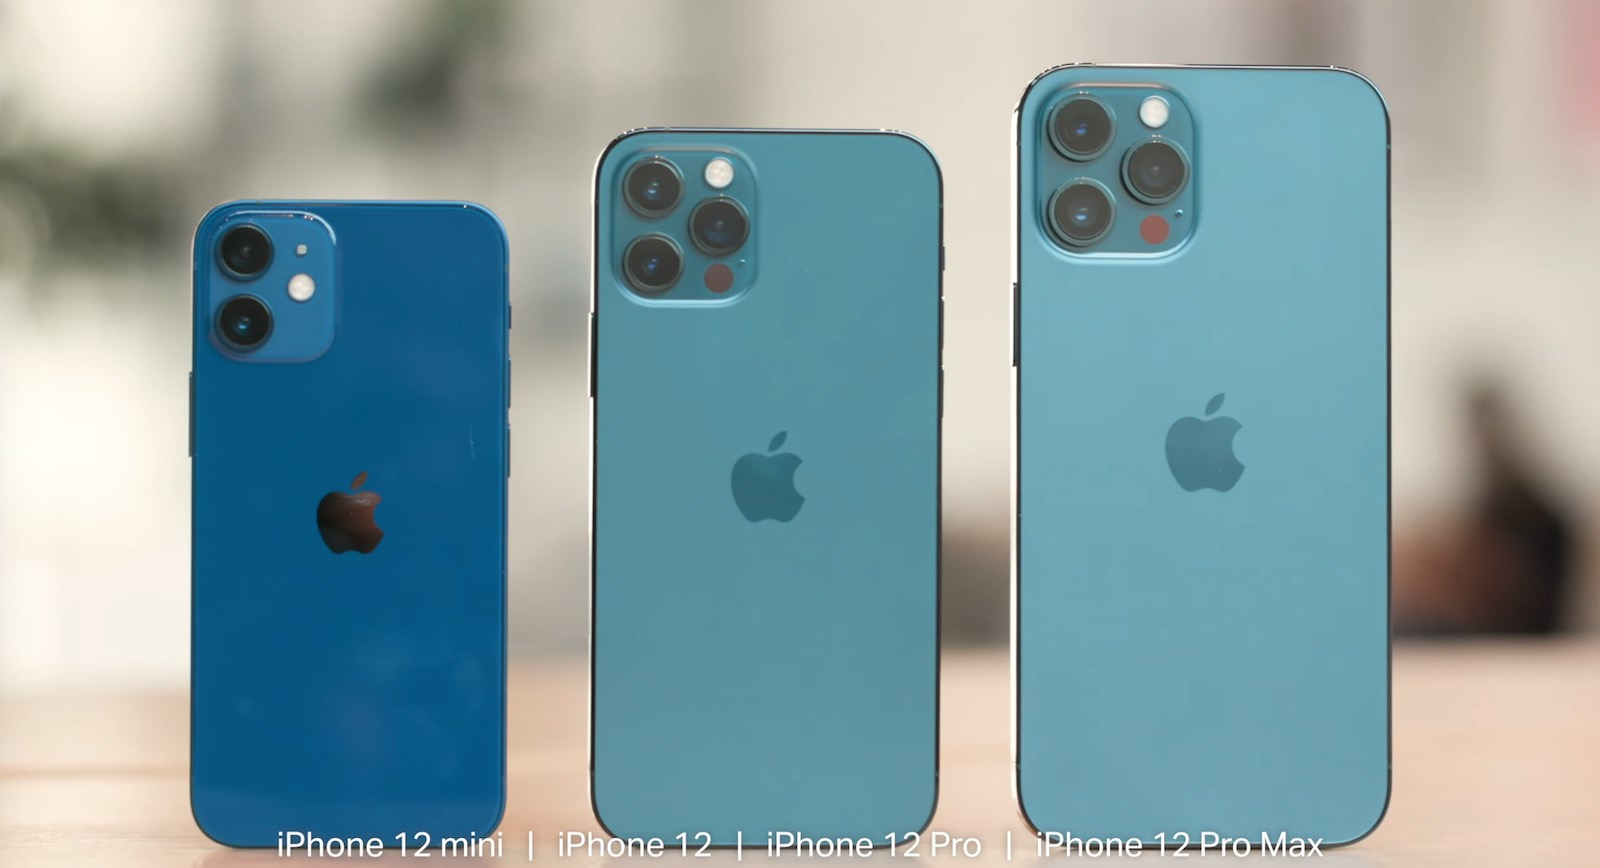 Iphone 12 series all sizes